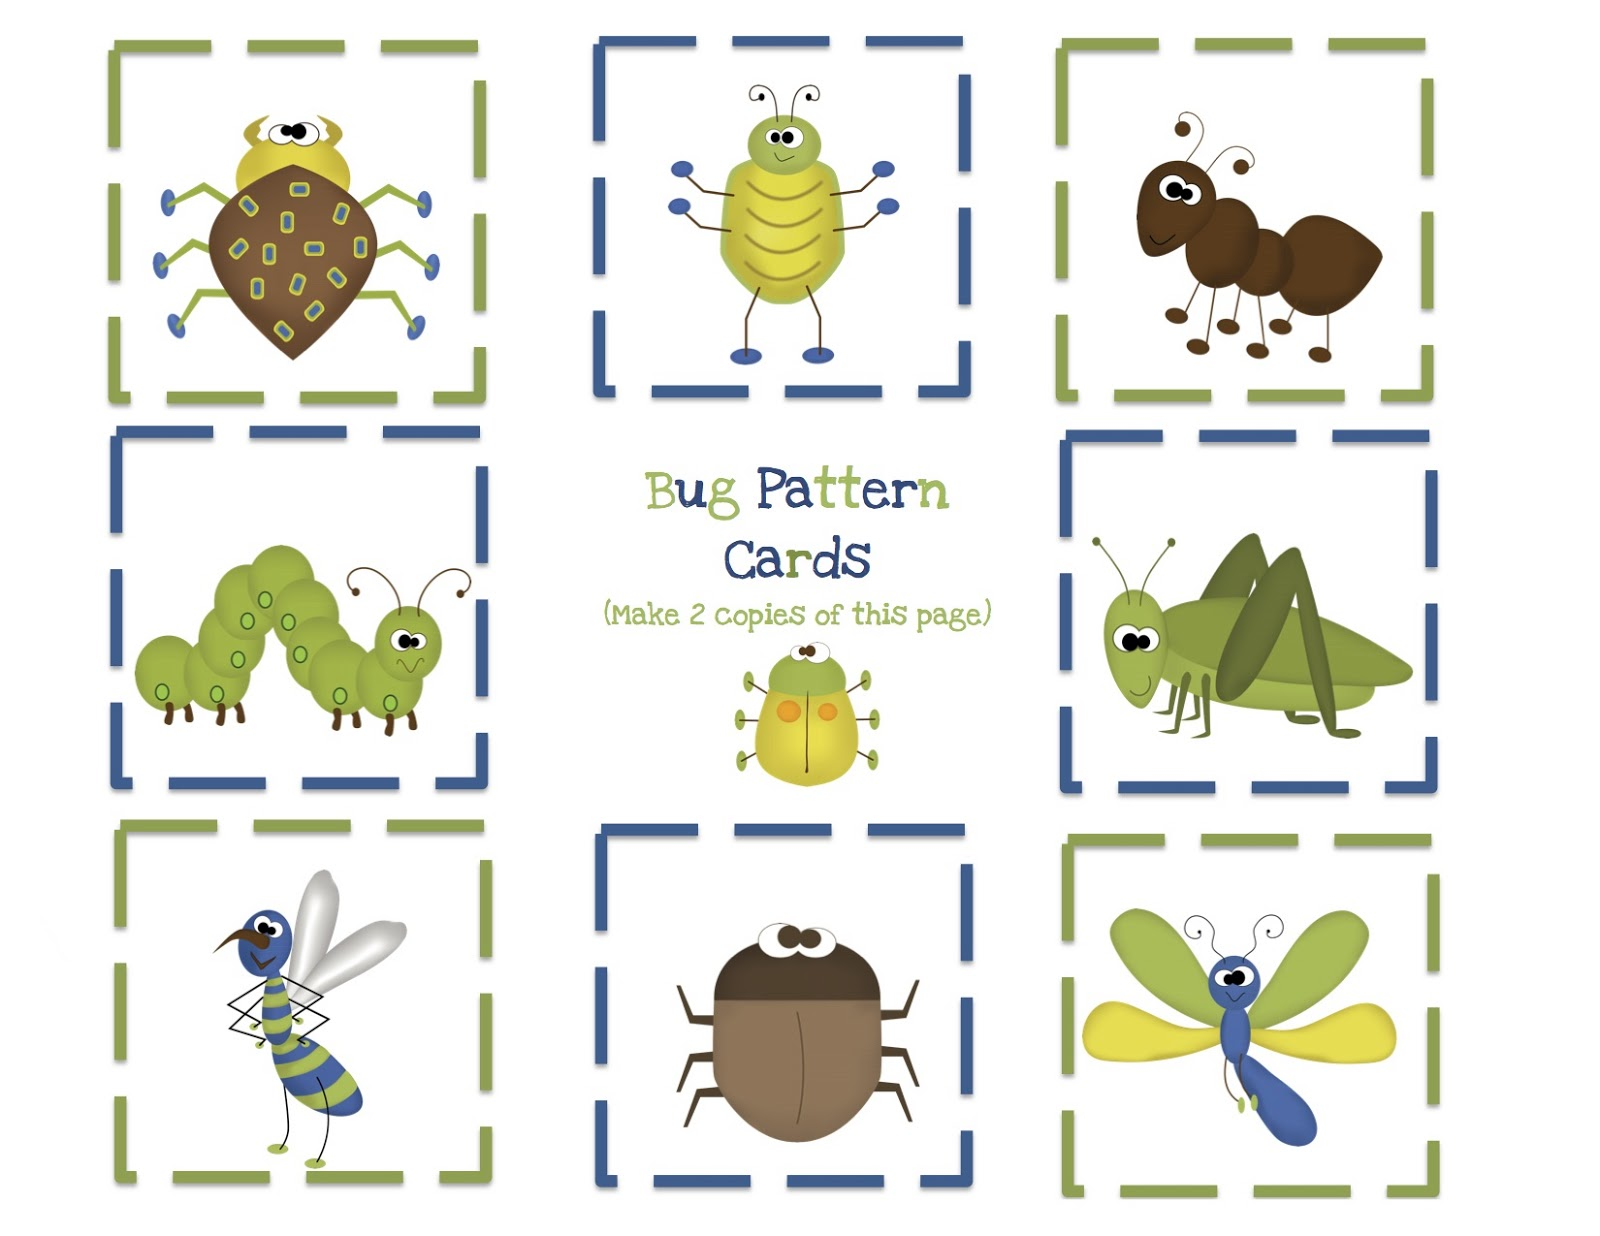 cards pattern: